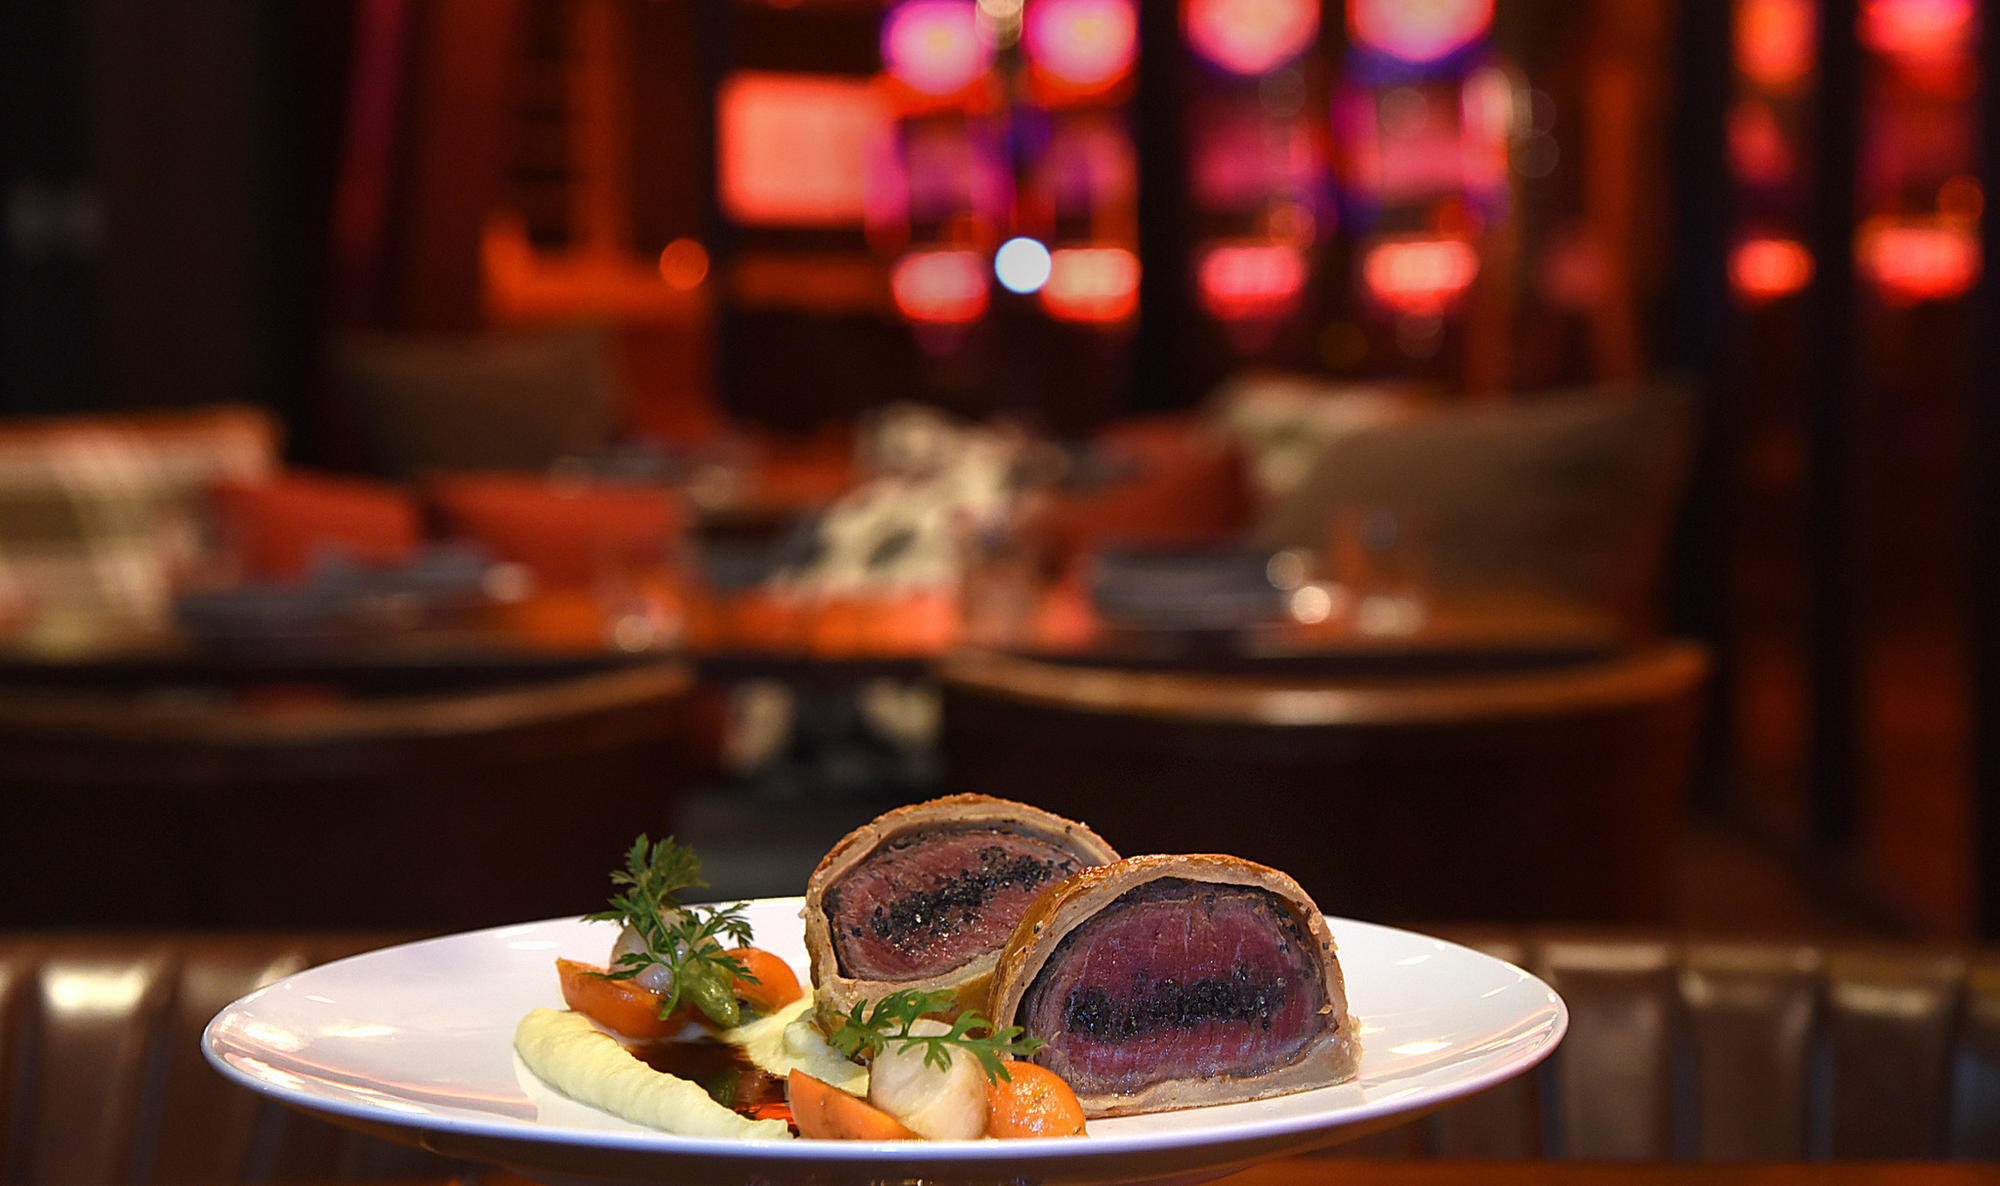 Dining Review At Gordon Ramsay Steak Stellar Food In A Room That Already Needs Makeover Baltimore Sun